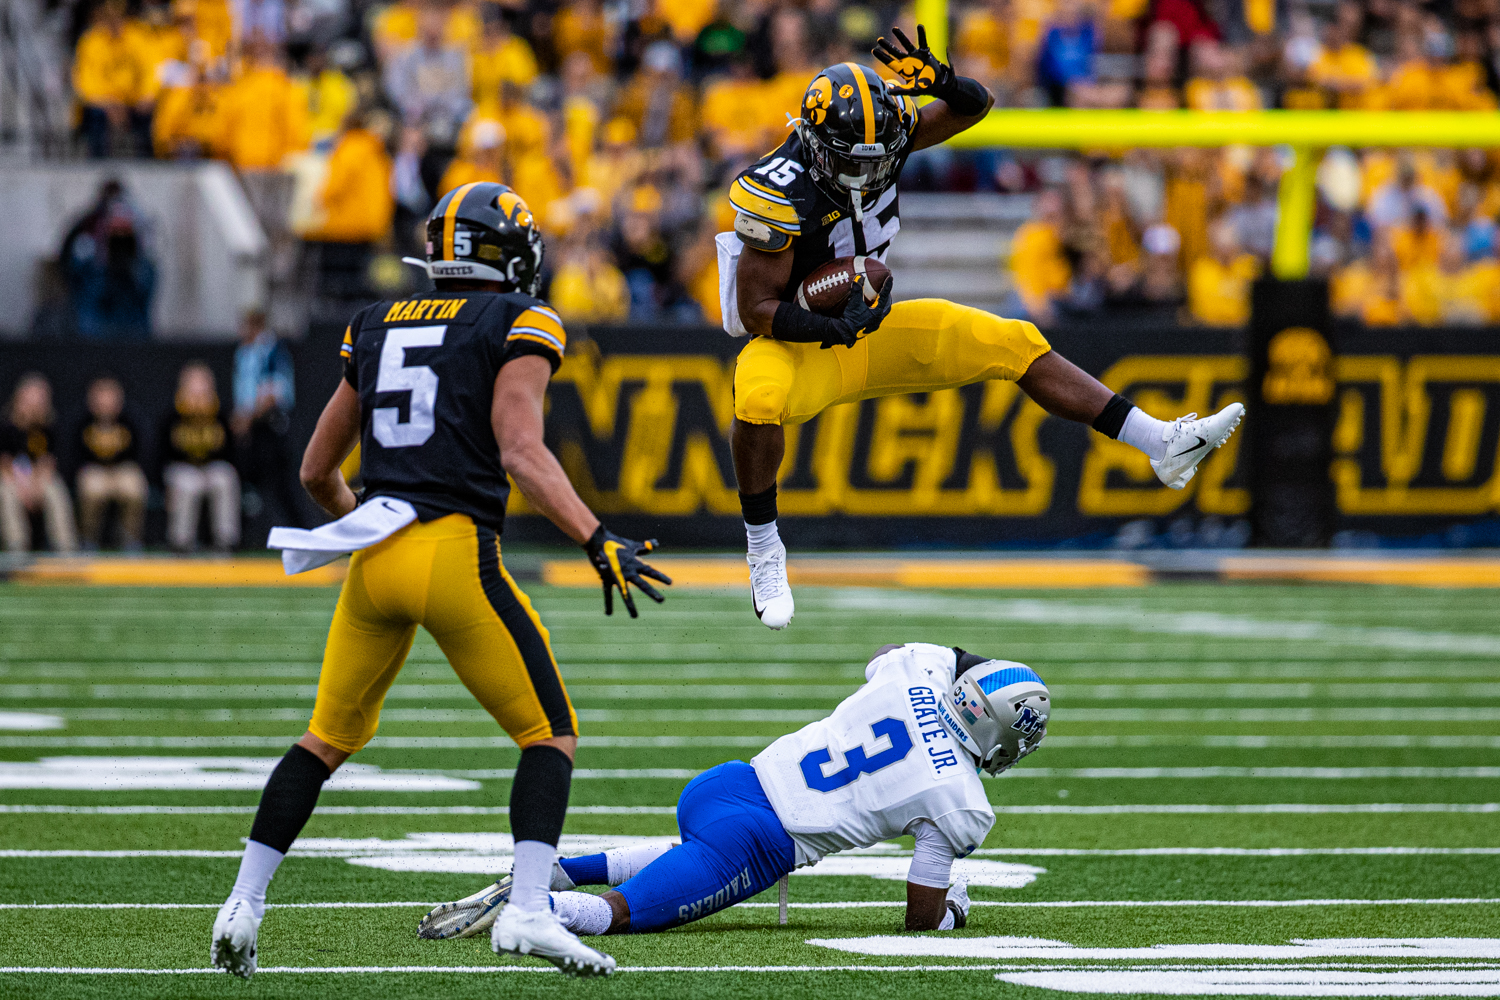 Iowa running back Tyler Goodson hurdles MTSU's Gregory Grate, Jr. during a football game between Iowa and Middle Tennessee State at Kinnick Stadium on Saturday, September 28, 2019. The Hawkeyes defeated the Blue Raiders, 48-3.